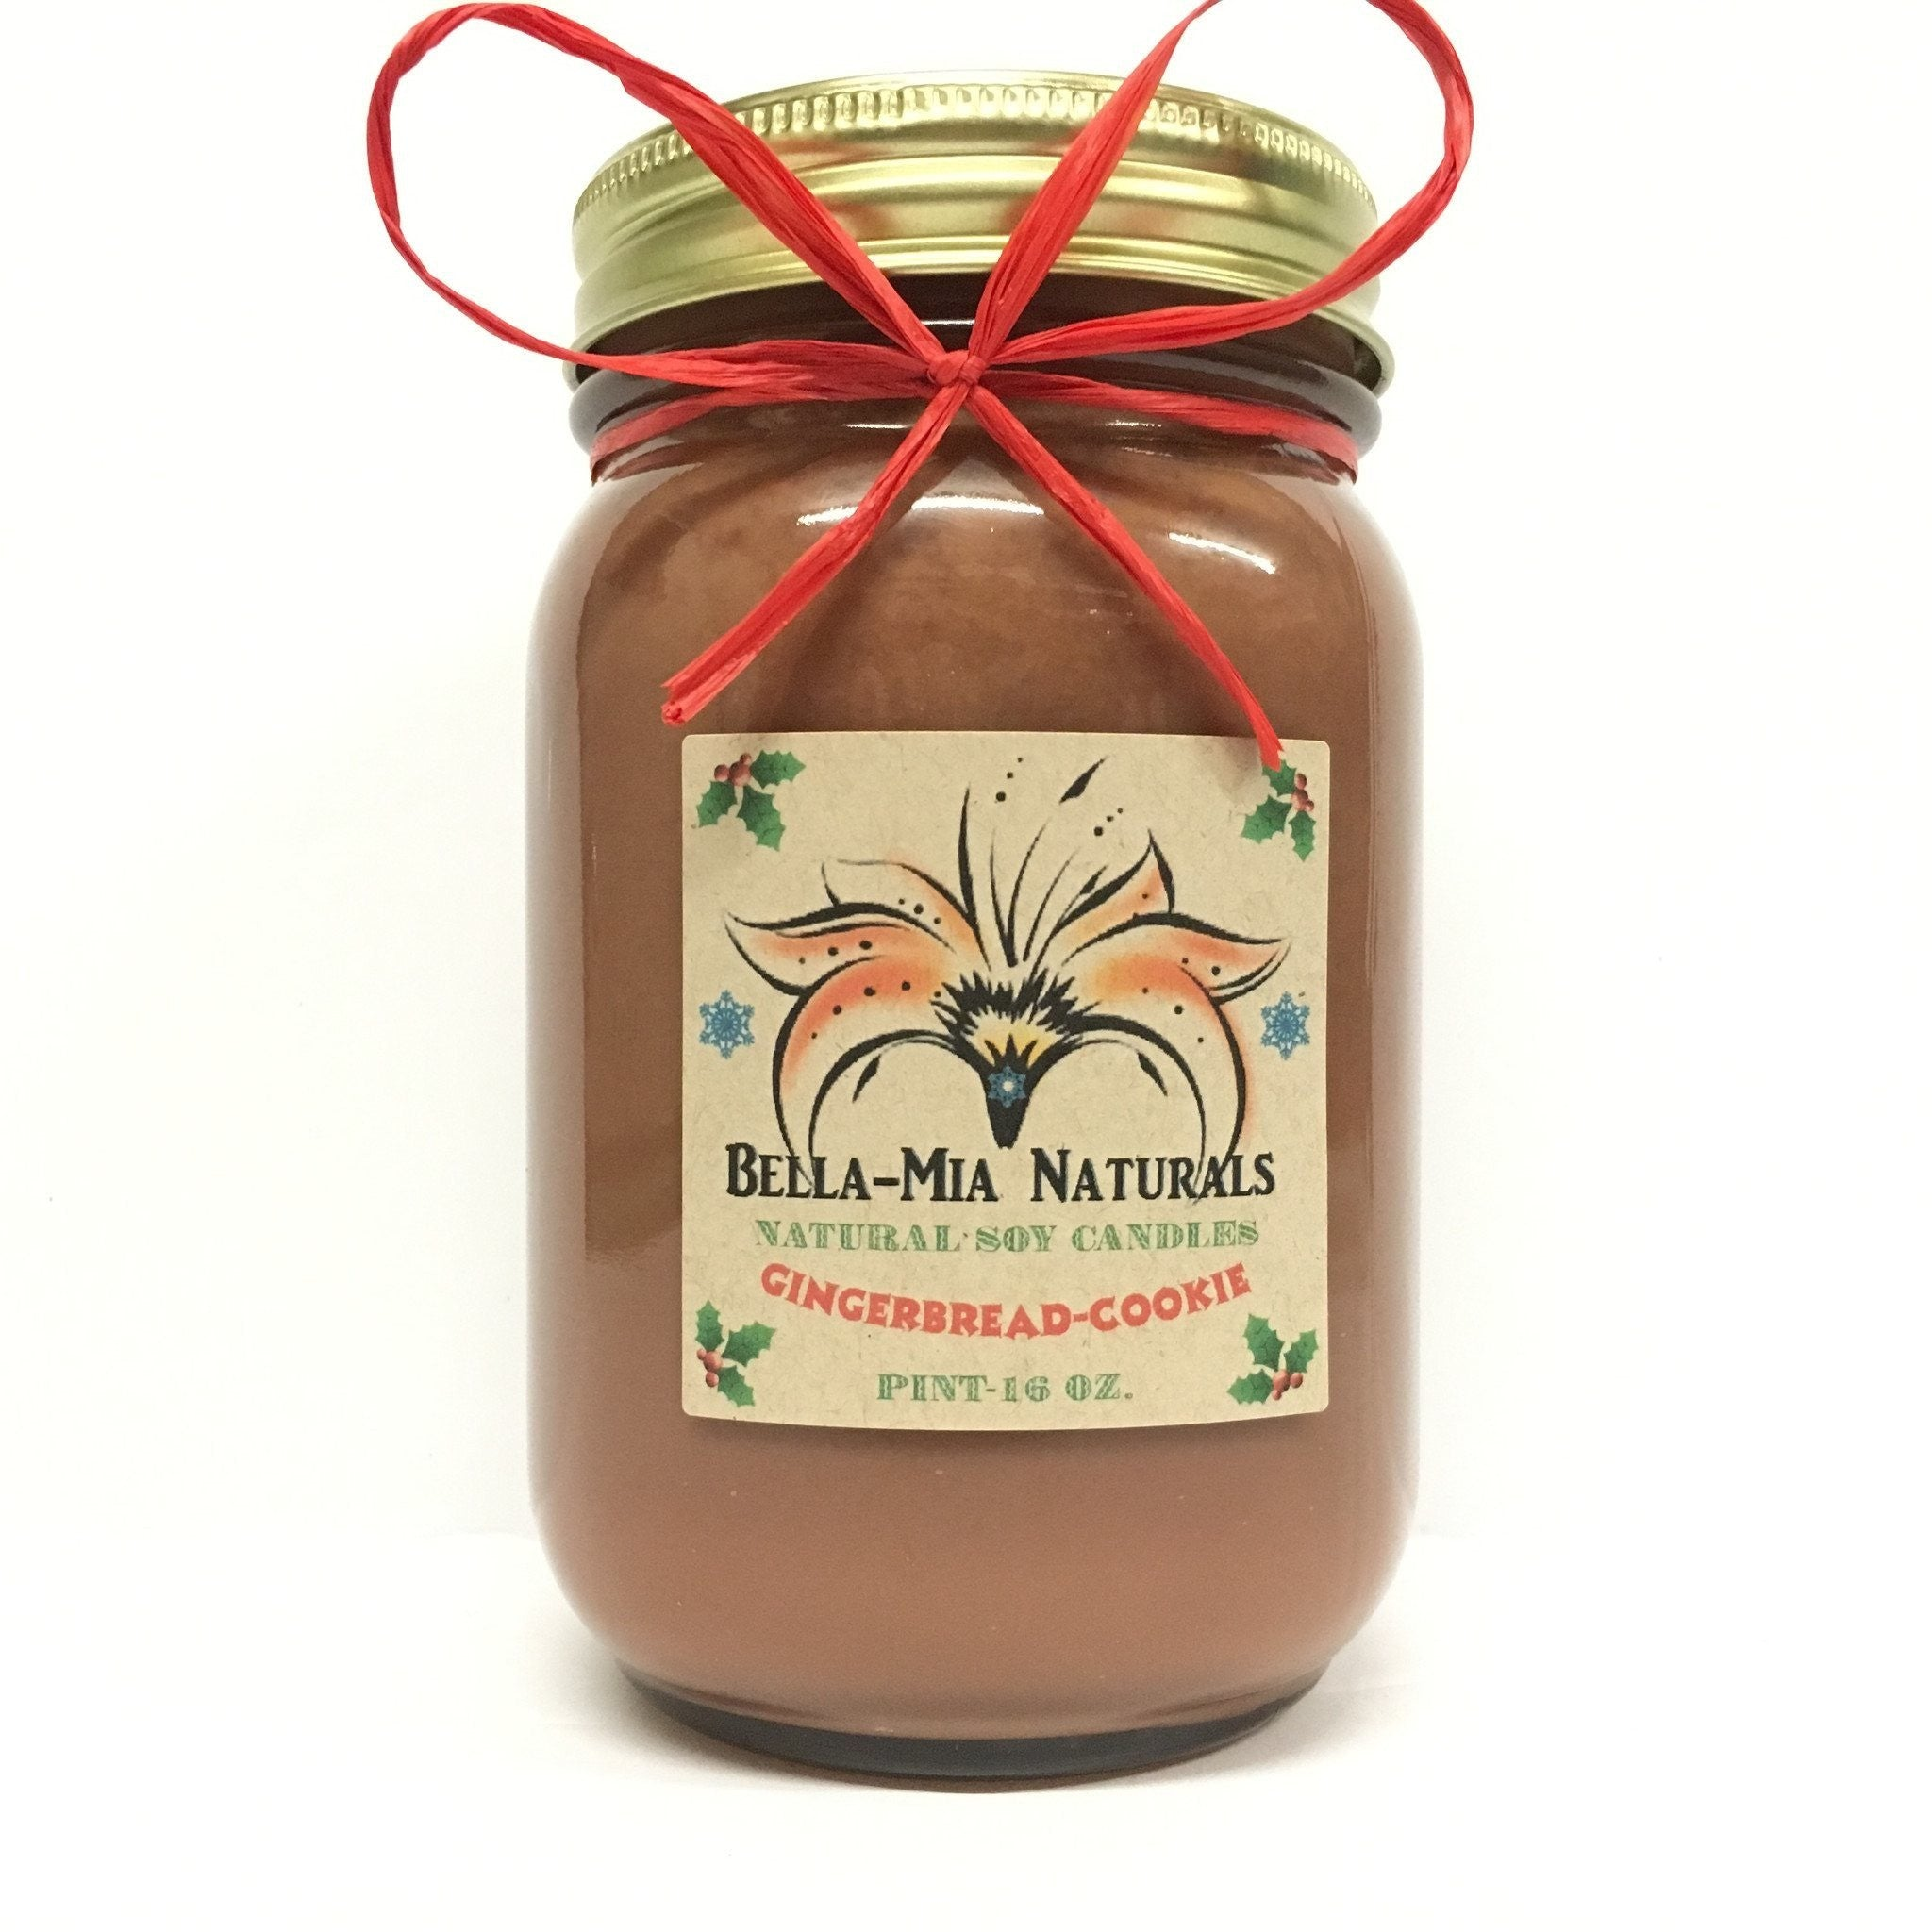 Gingerbread-Cookie Natural Hand Poured Soy Candles - Pint - Bella-Mia Naturals All Natural Soy Candles & Lip Balms - 2